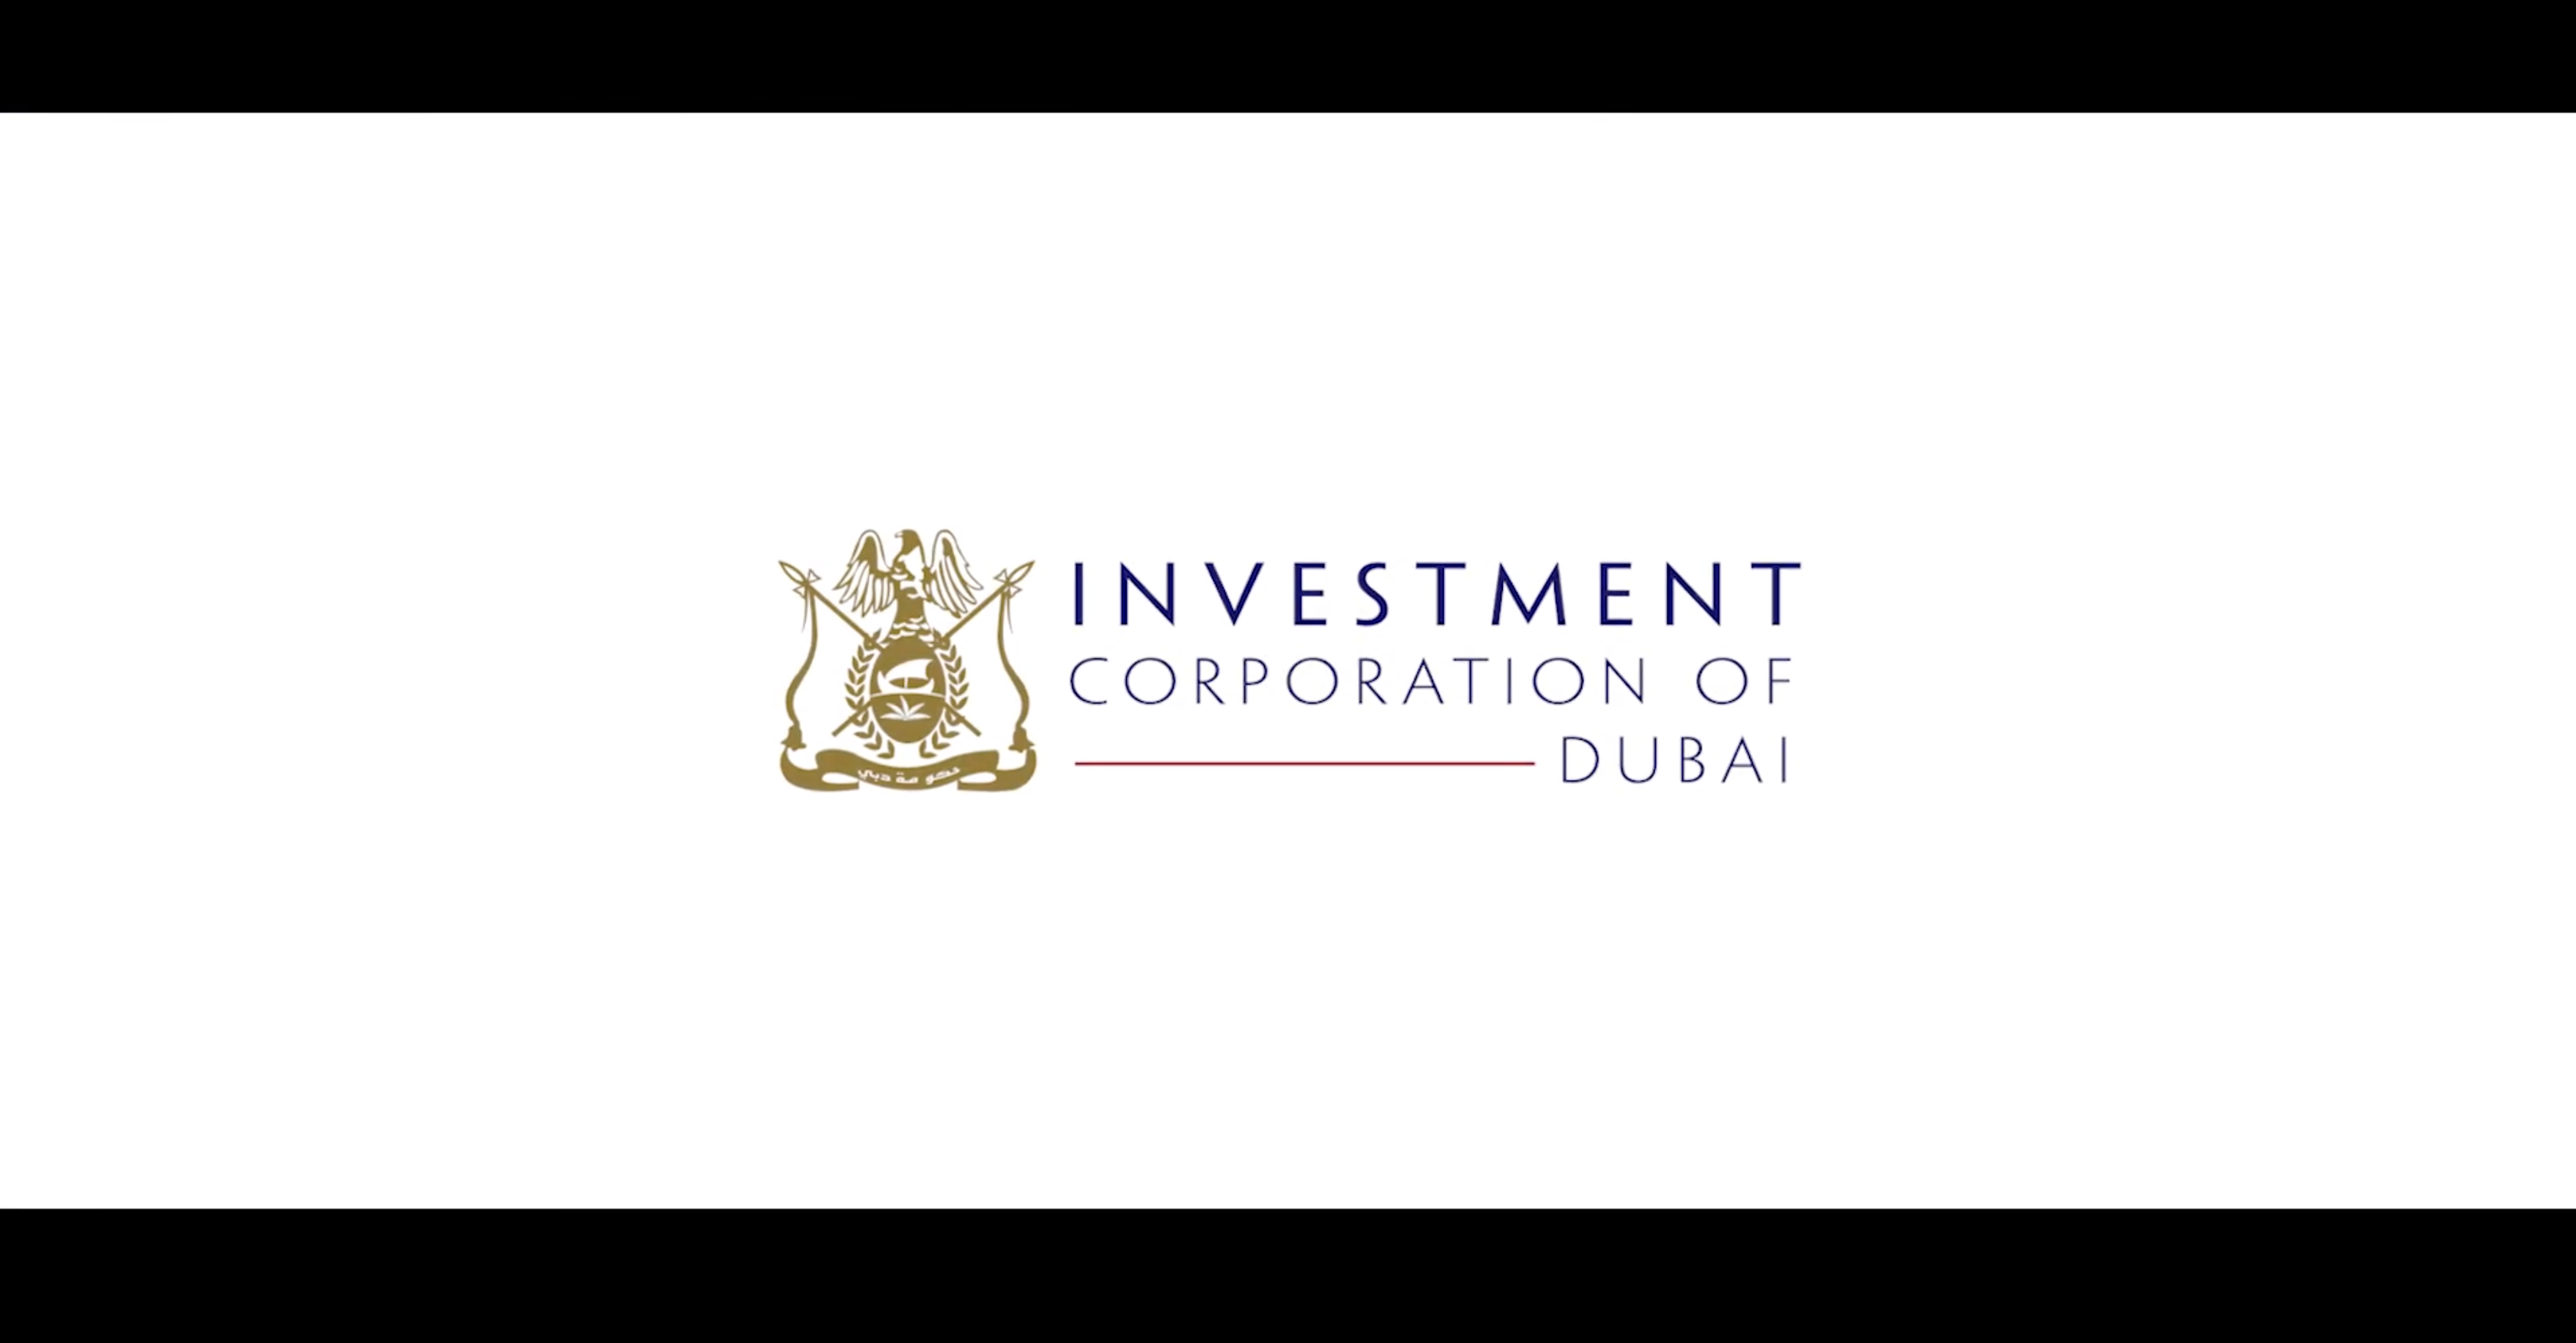 Investment Corporation of Dubai